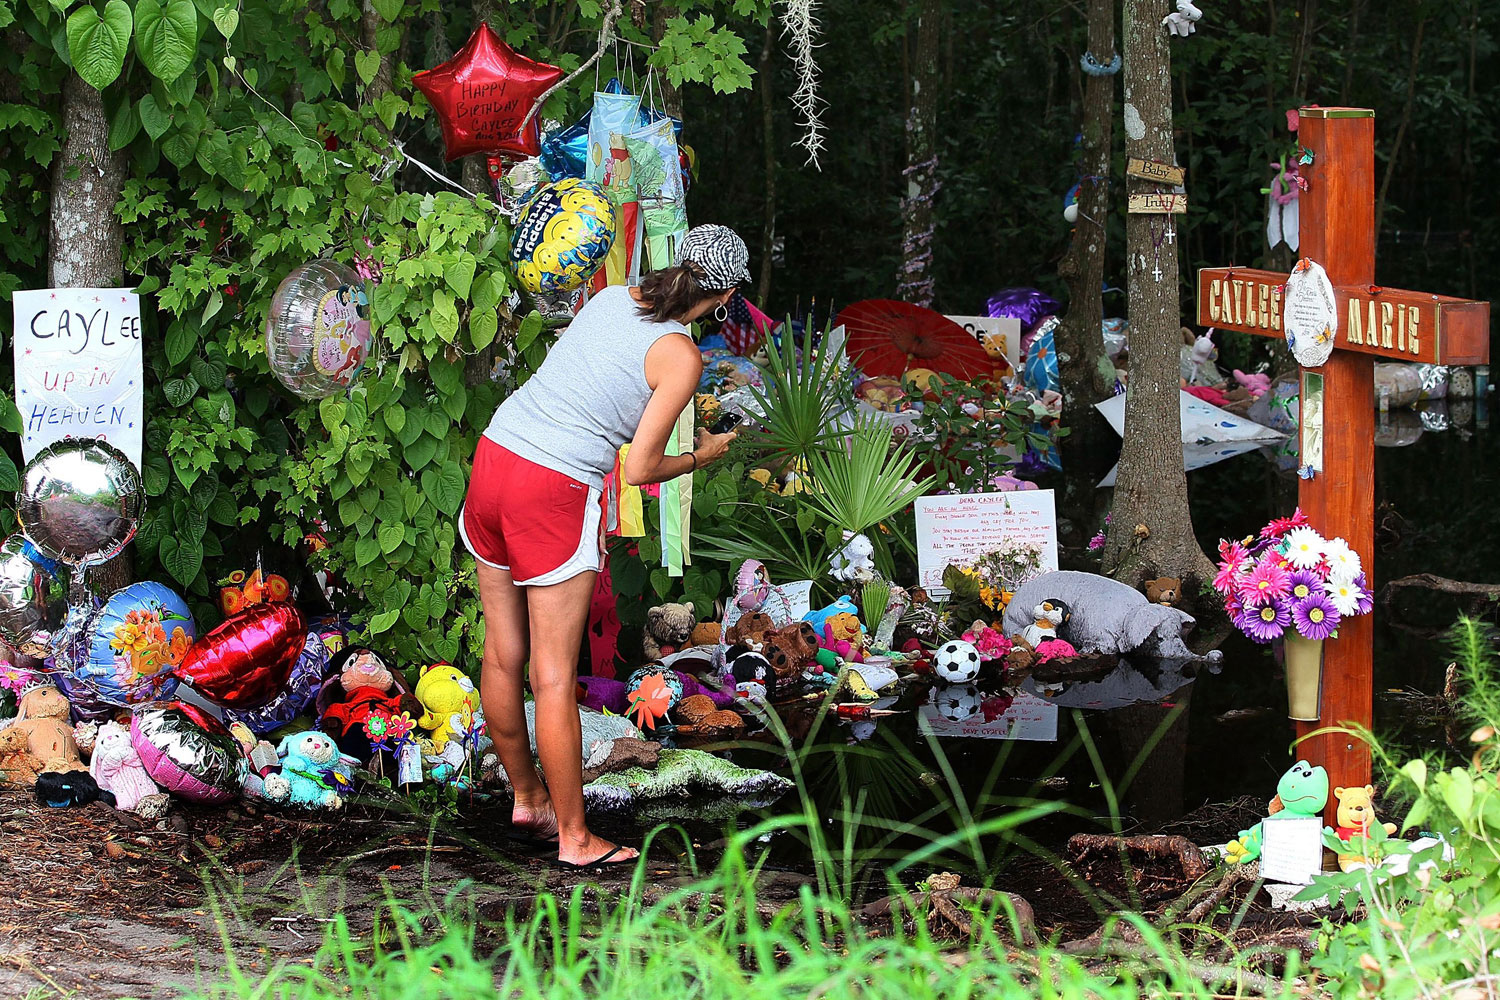 July 16, 2011. A woman pays a visit to the Caylee Anthony memorial located at the site in Orlando where the 2-year-old child's remains were found in December 2008.